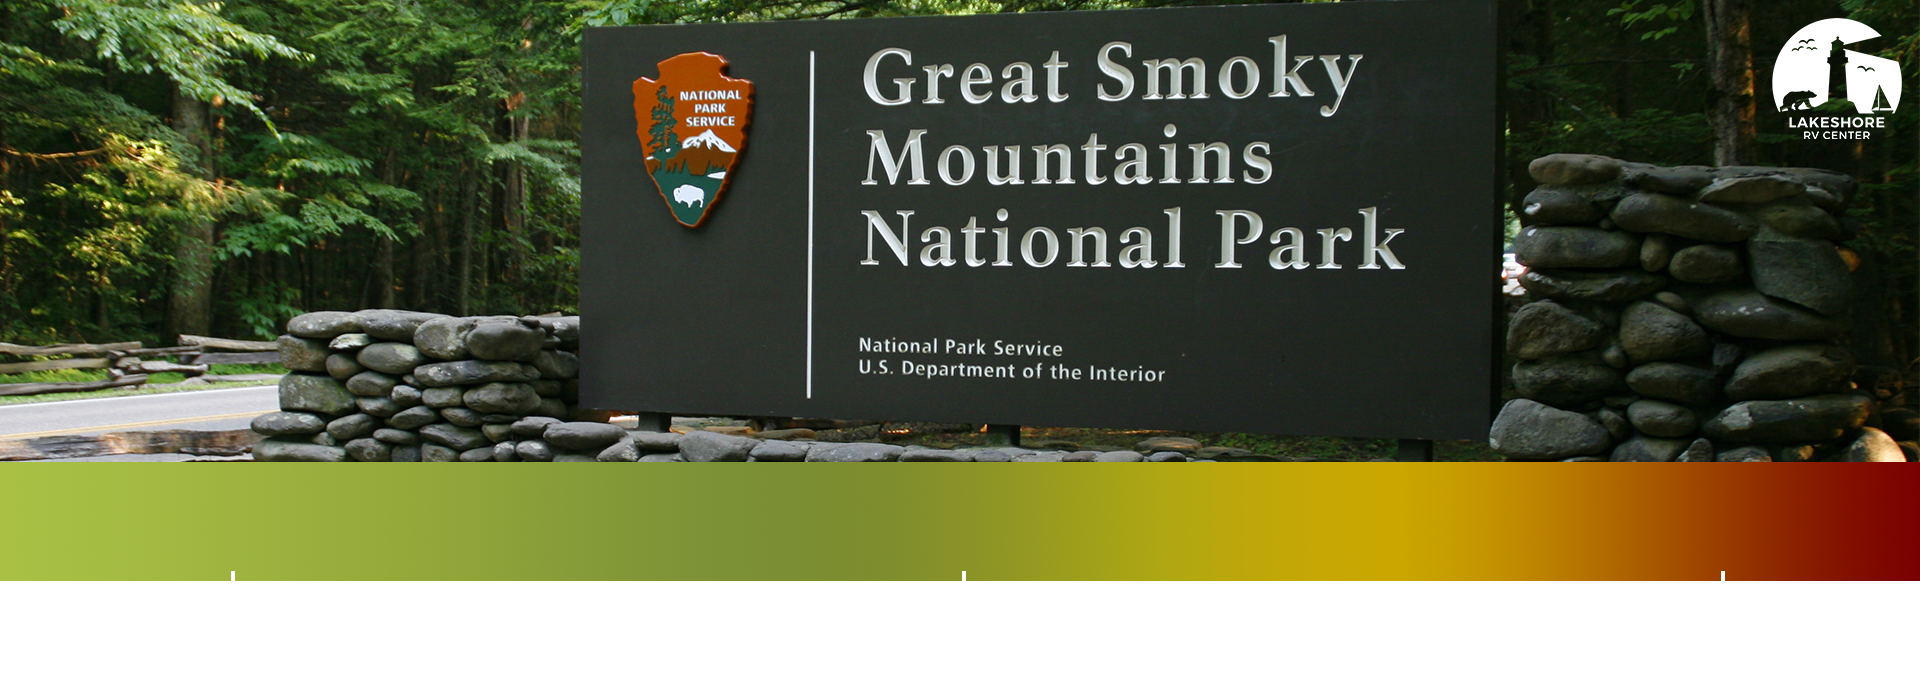 national park sign and scale